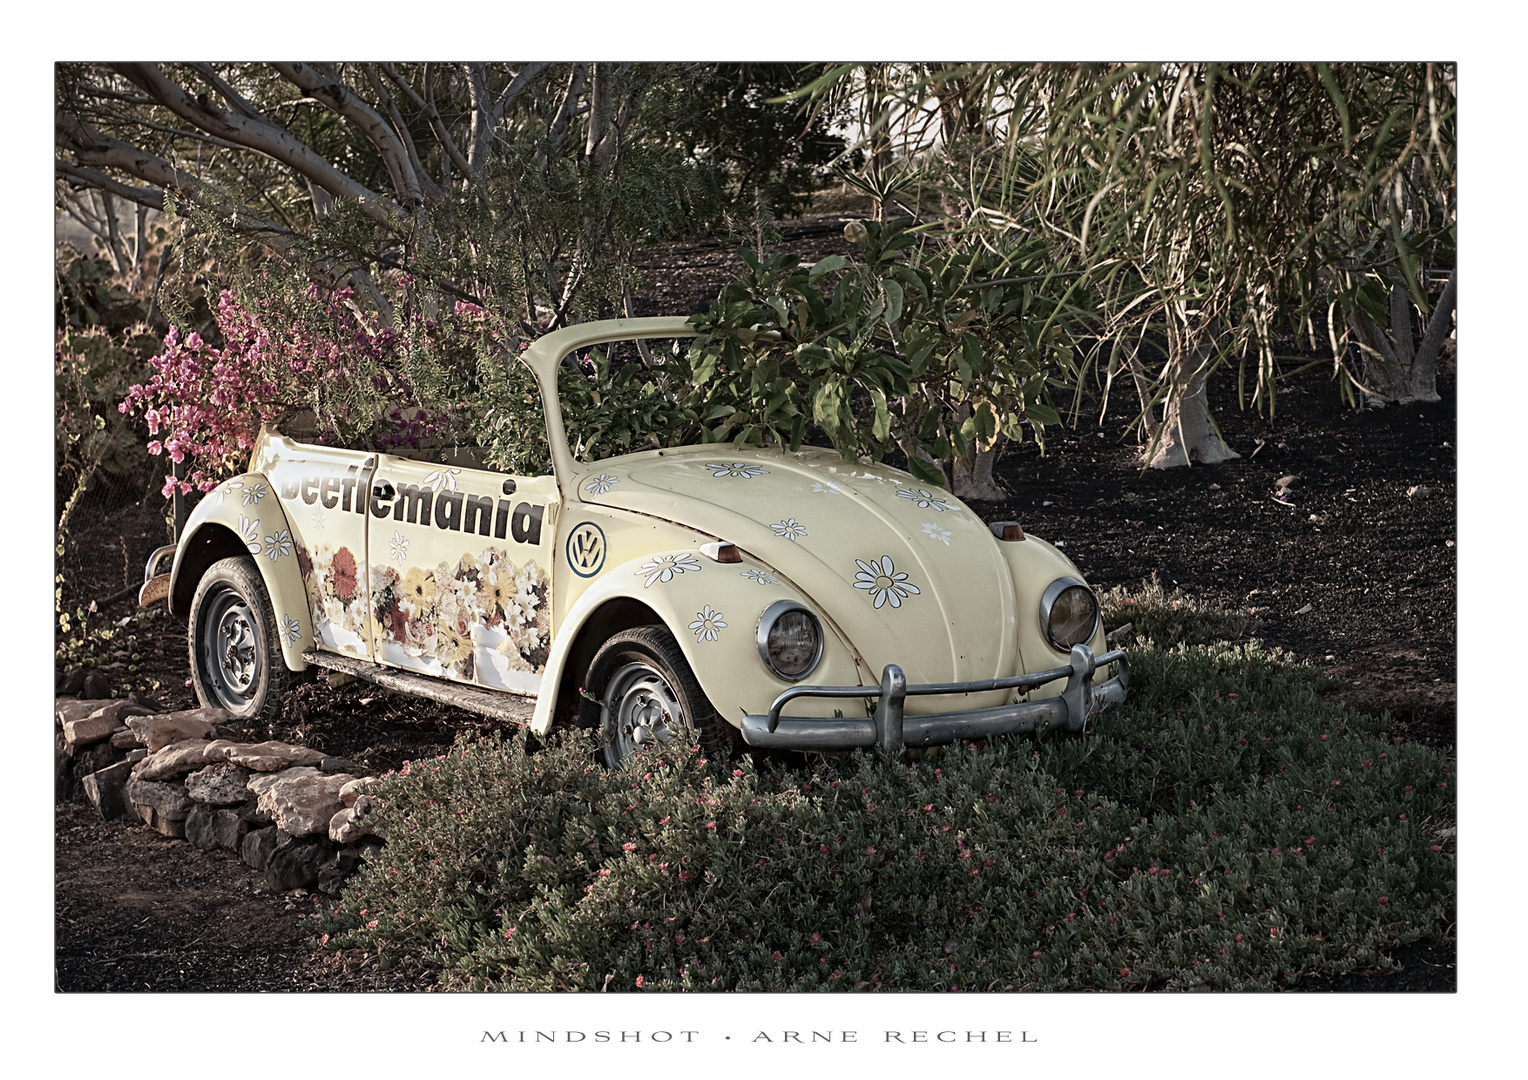 The Beetle - Fundstueck